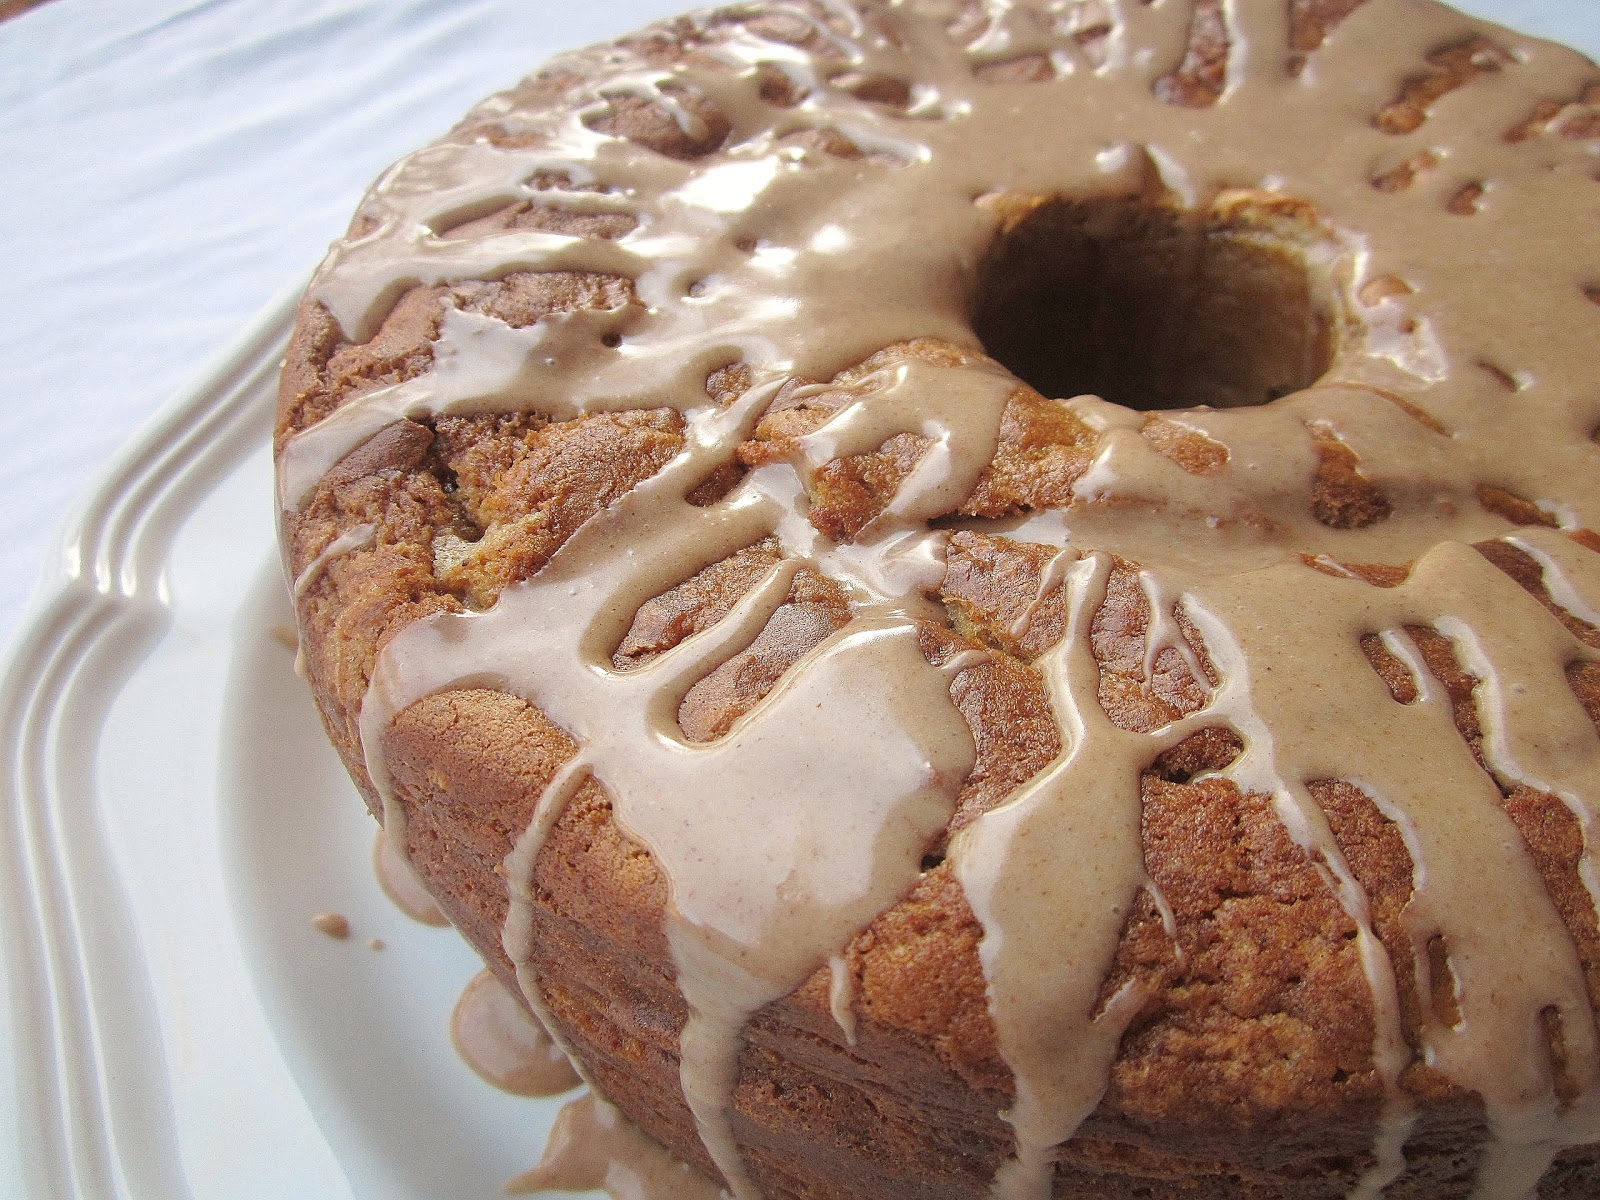 Glazed Apple Cakes With Cinnamon Sugar Recipes — Dishmaps